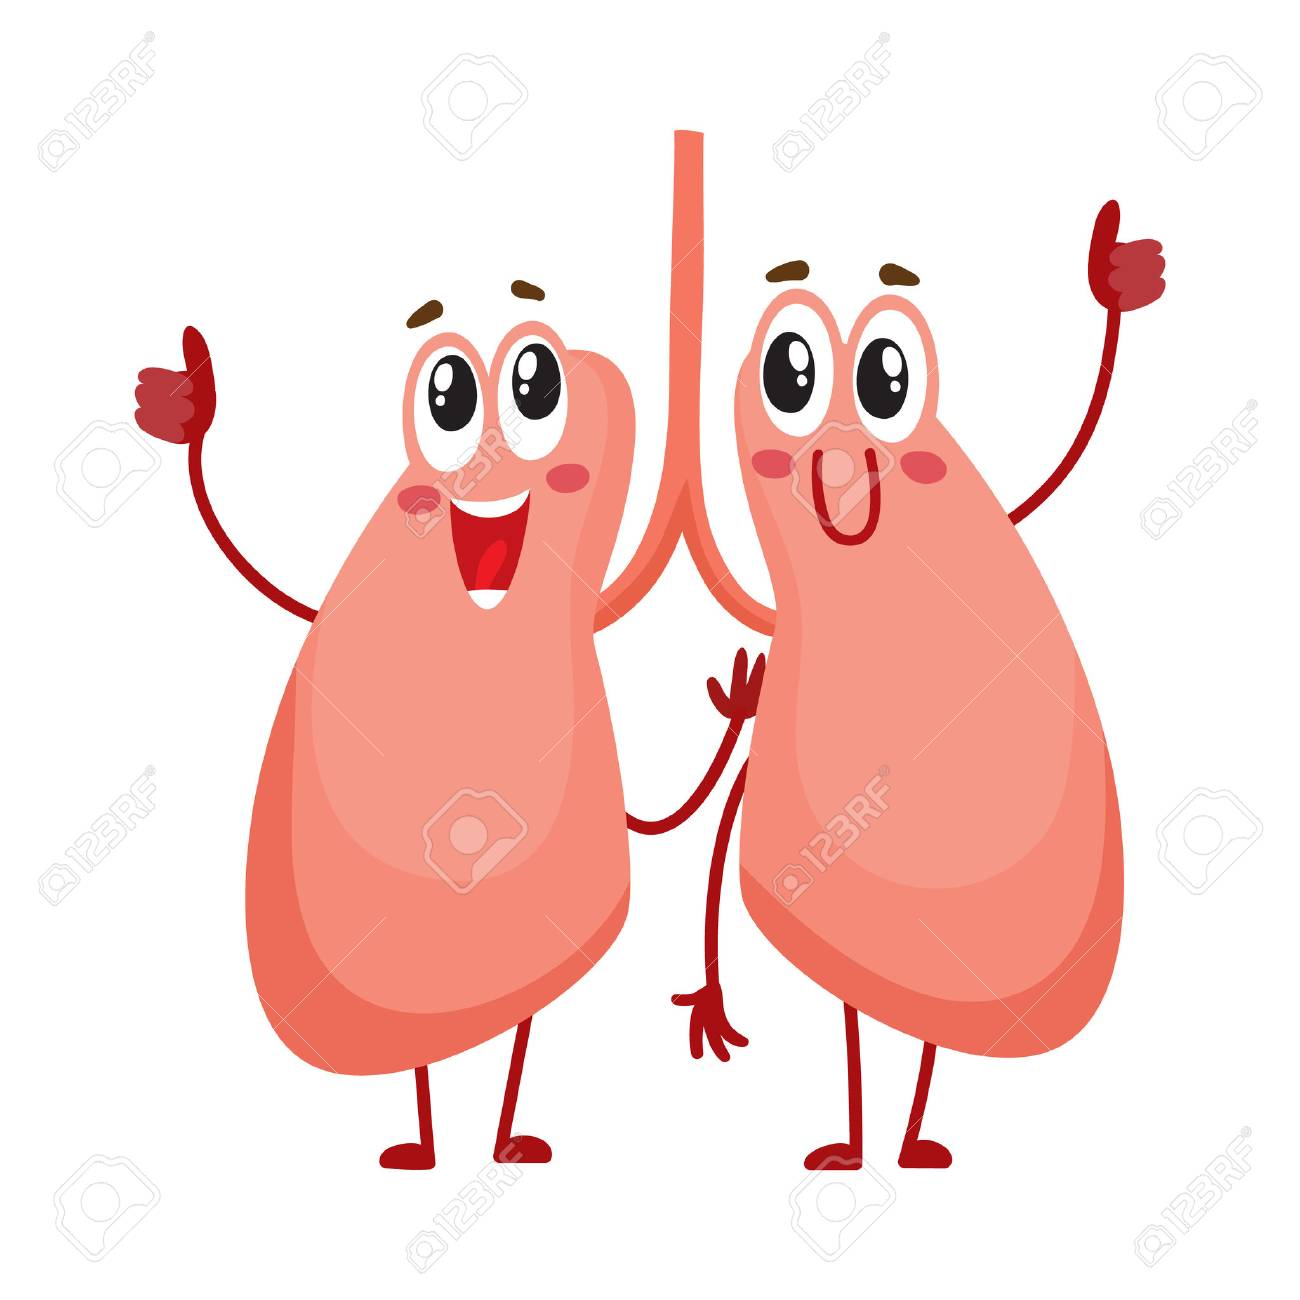 Pair of cute and funny, smiling human lung characters, cartoon vector illustration isolated on white background. Healthy human lung characters, respiratory system health care element - 72782770